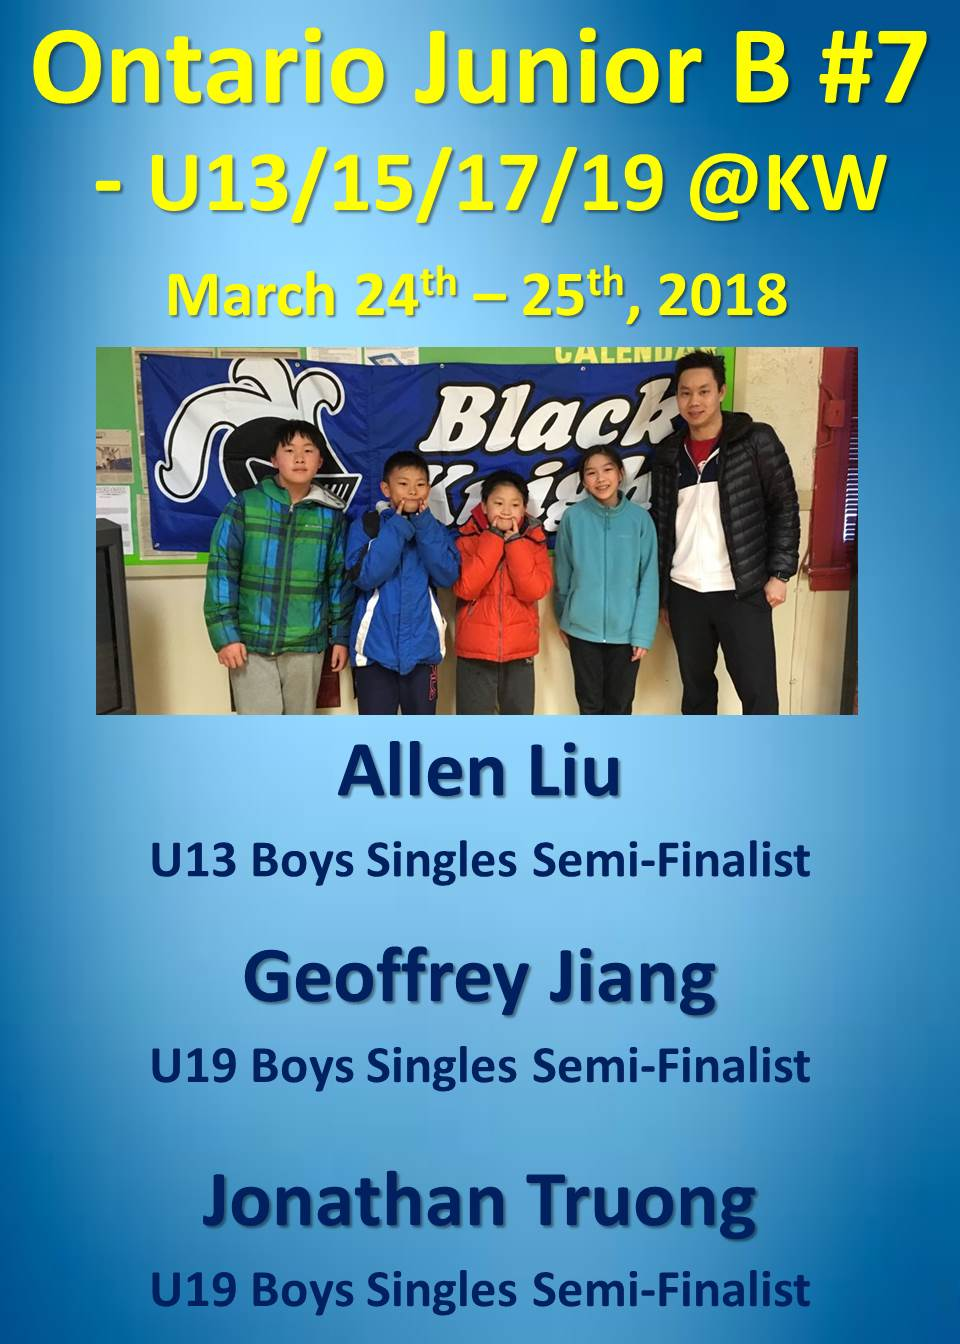 Jr B #7 KW March 24-25, 2018